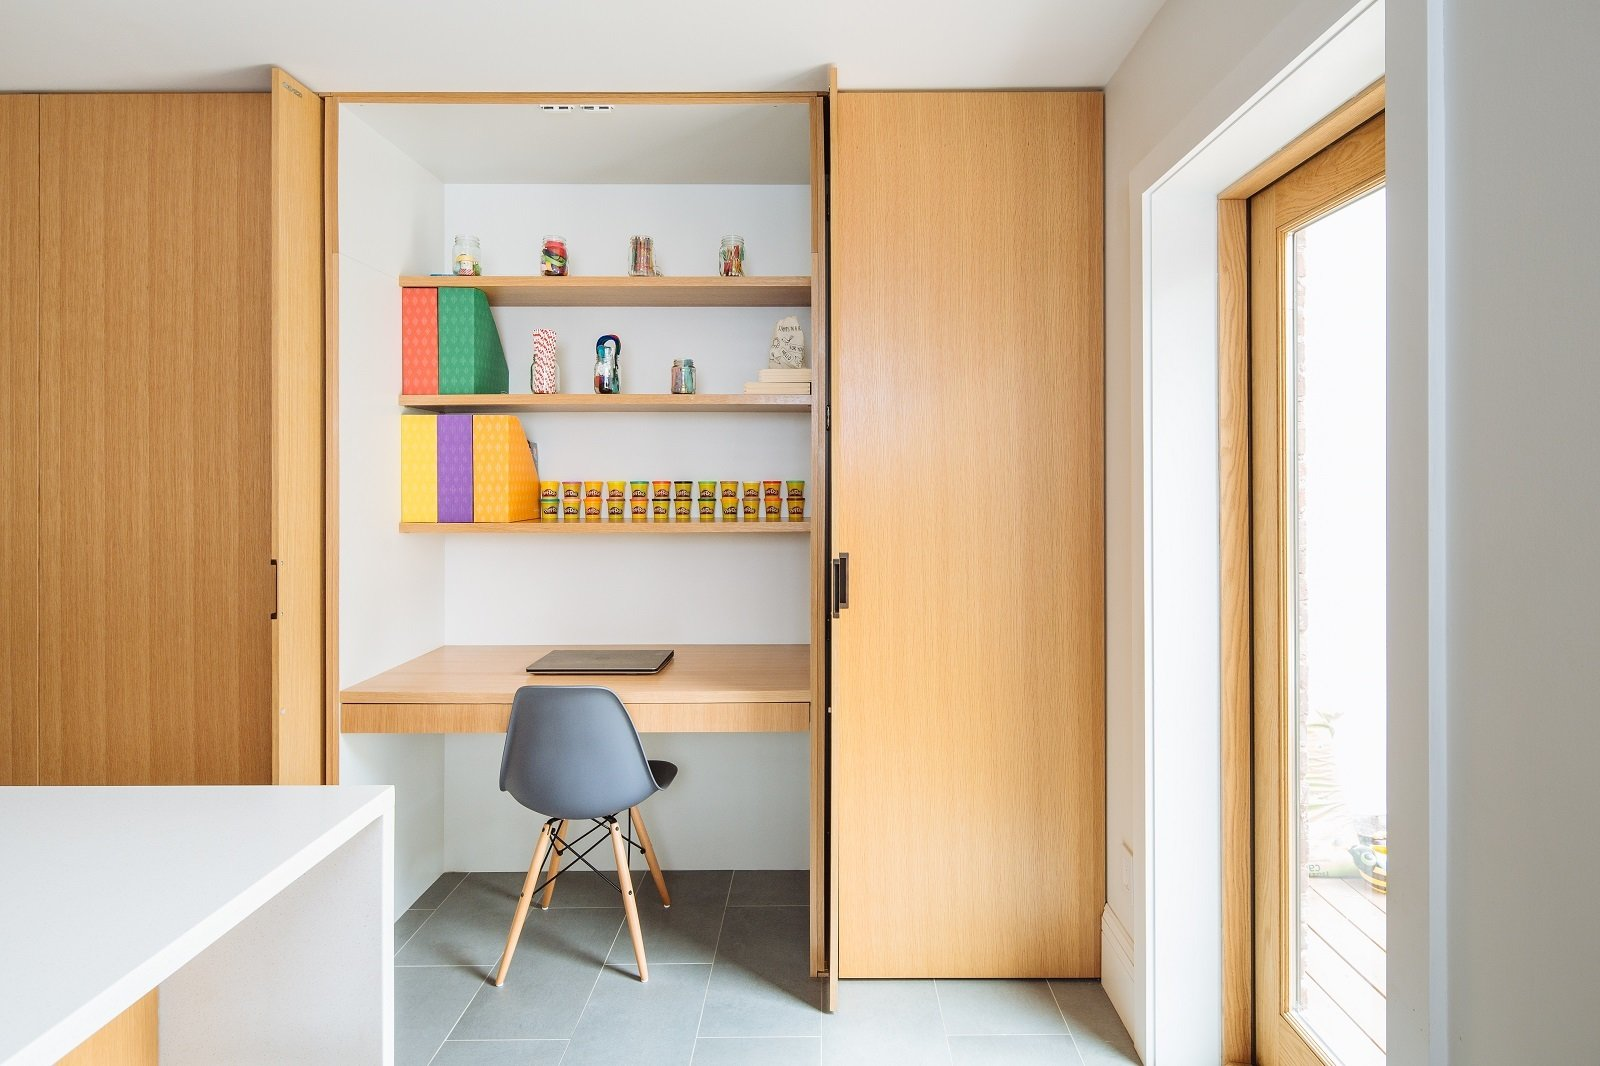 Tucked in a small workspace, just behind the kitchen pantry's pivot pocket doors Tagged: Office, Study, Chair, Storage, Craft Room, Shelves, Porcelain Tile Floor, and Desk.  Brooklyn Brownstone by Sonya Lee Architect llc